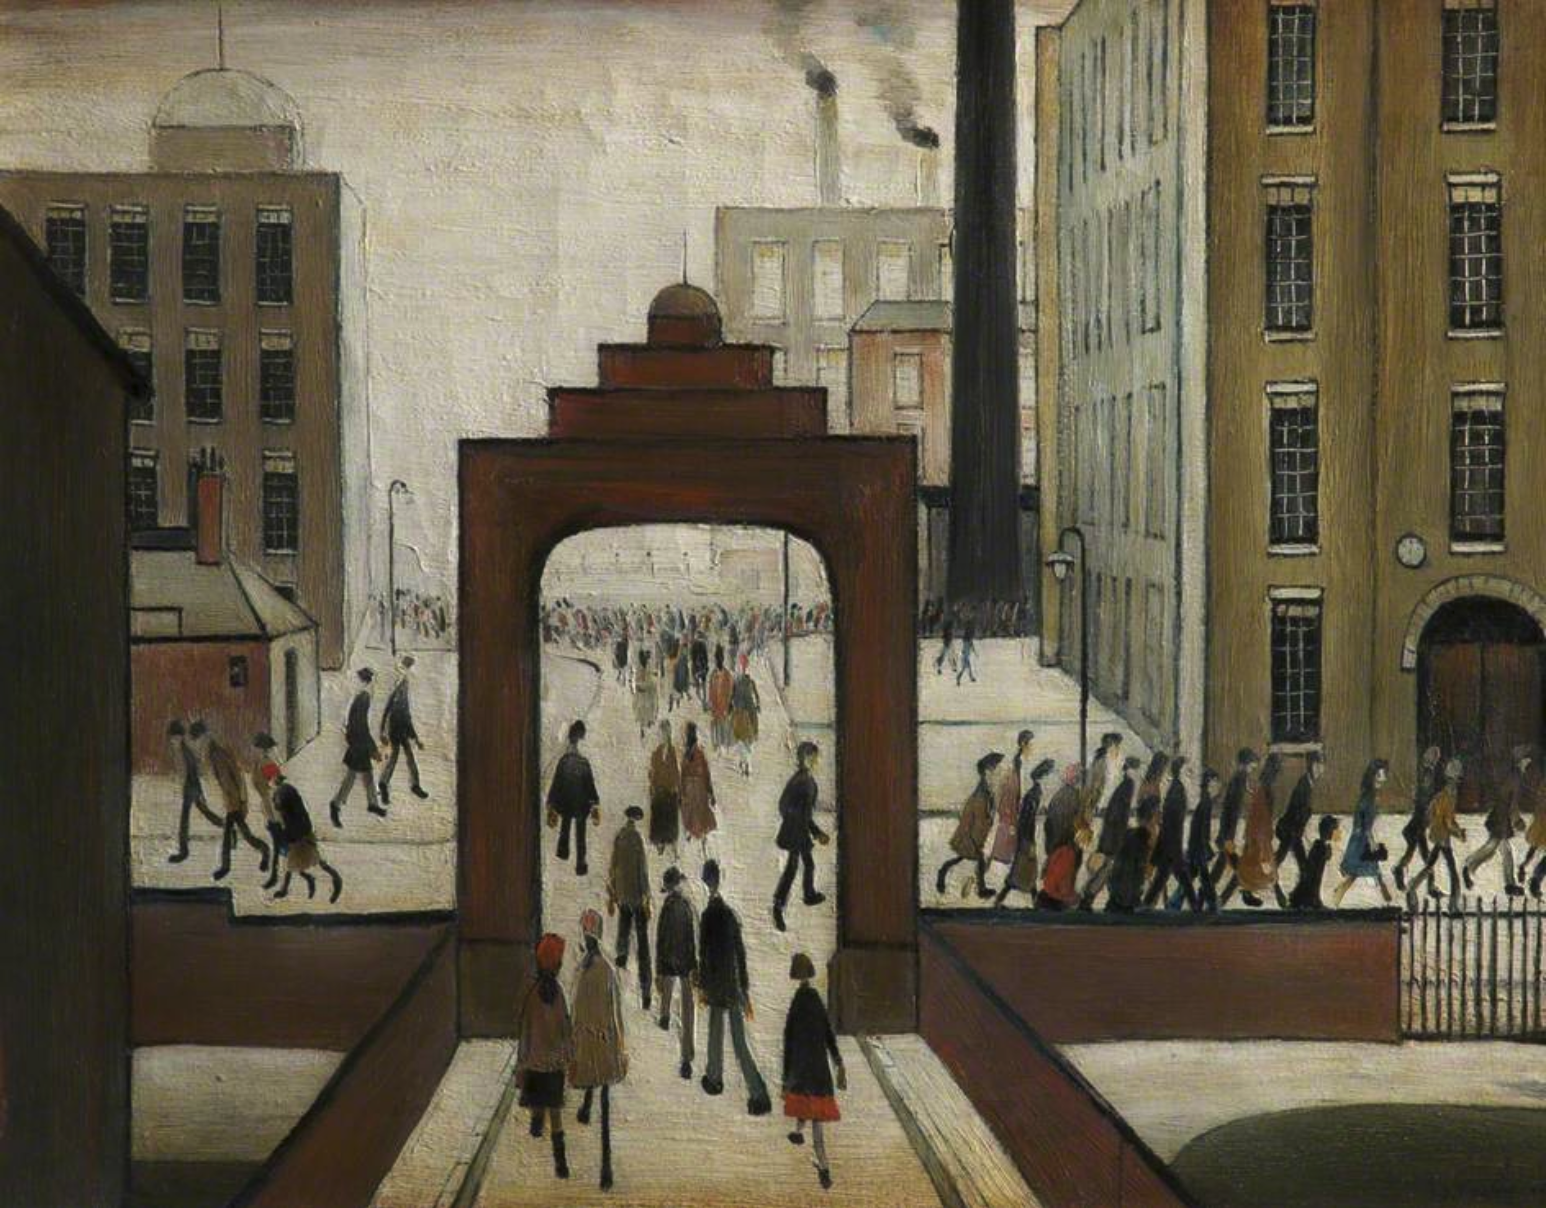 Early Morning (1954) by Laurence Stephen Lowry (1887 - 1976), English artist.